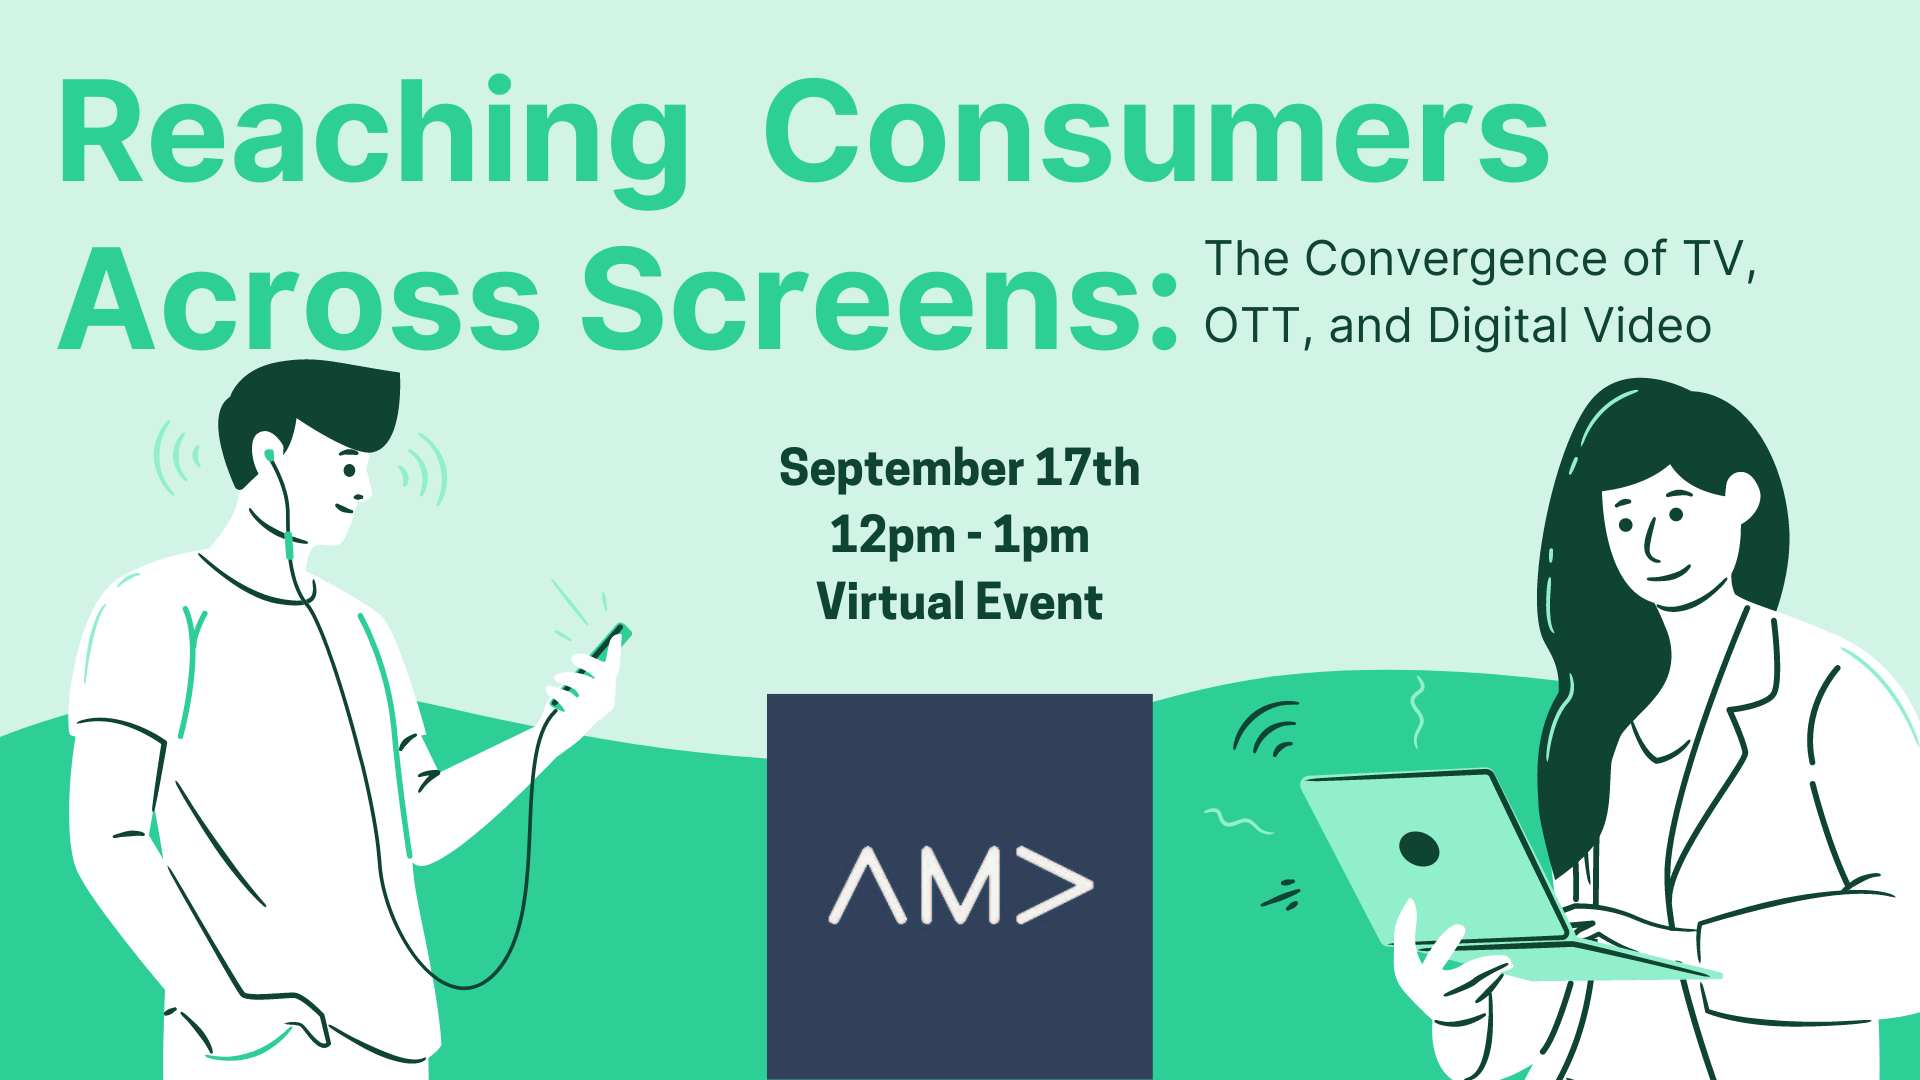 Reaching Consumers Across Screens